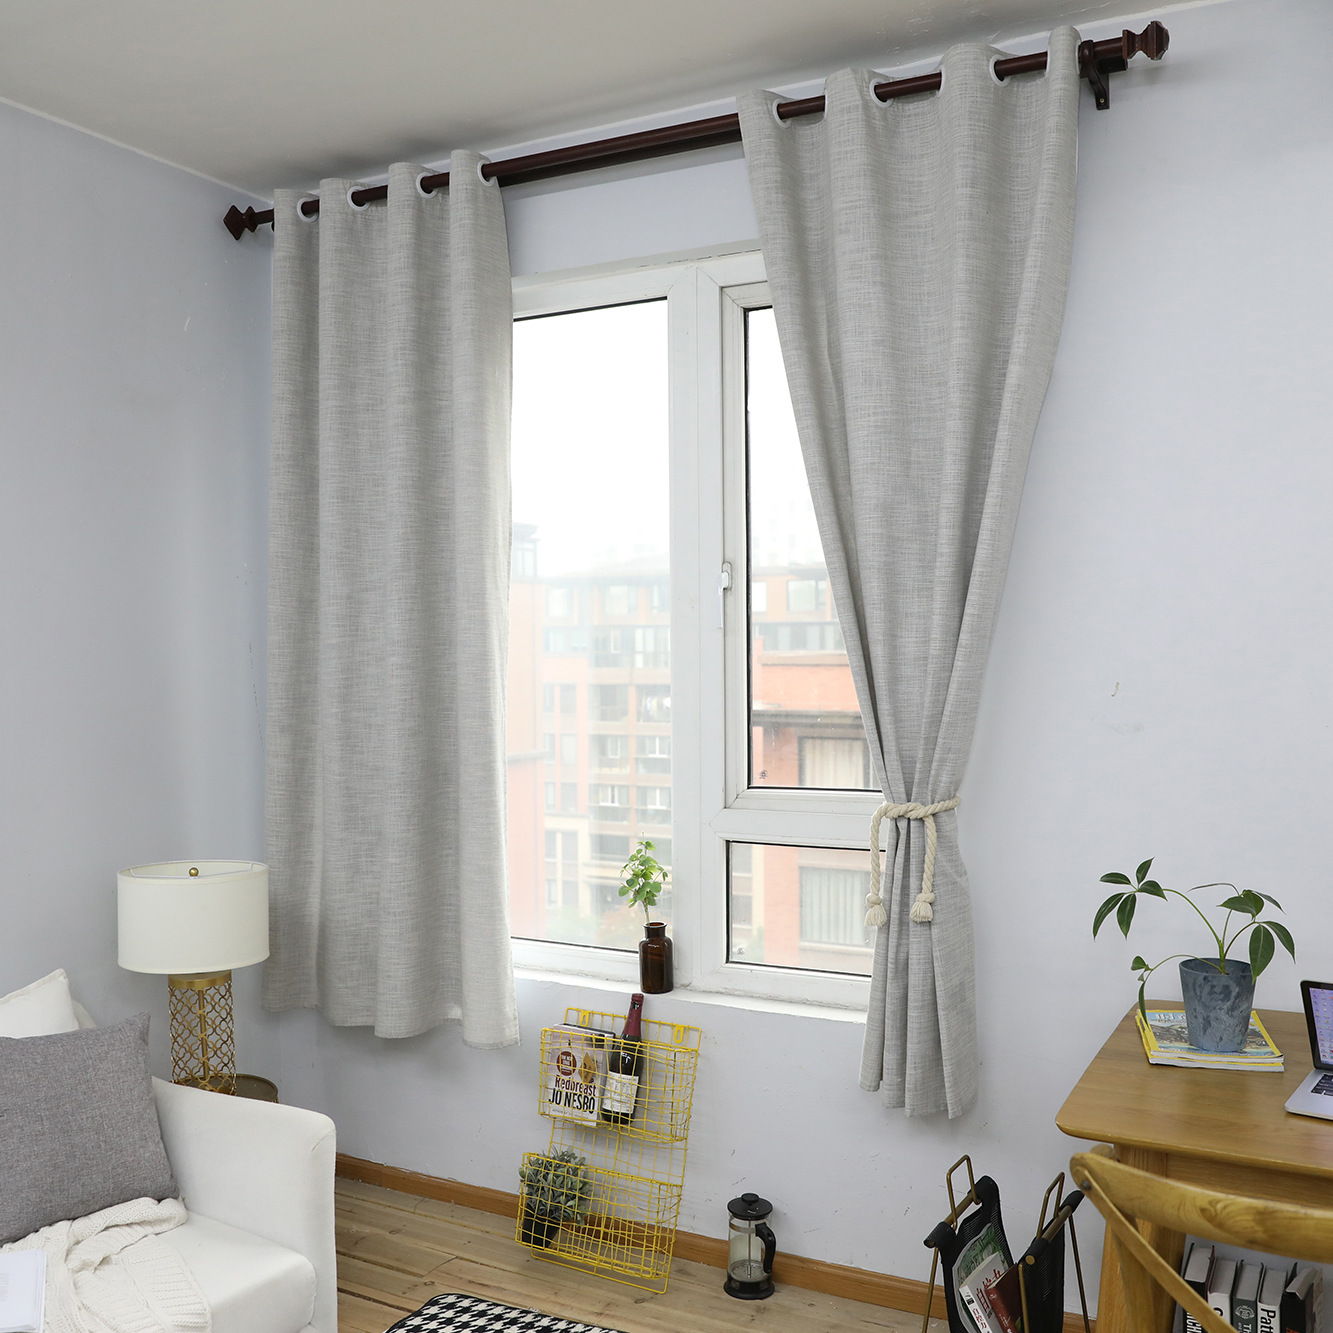 Details About 55 85inch Nordic Solid Thick Curtains Semi Blockout Eyelet Living Room Grey